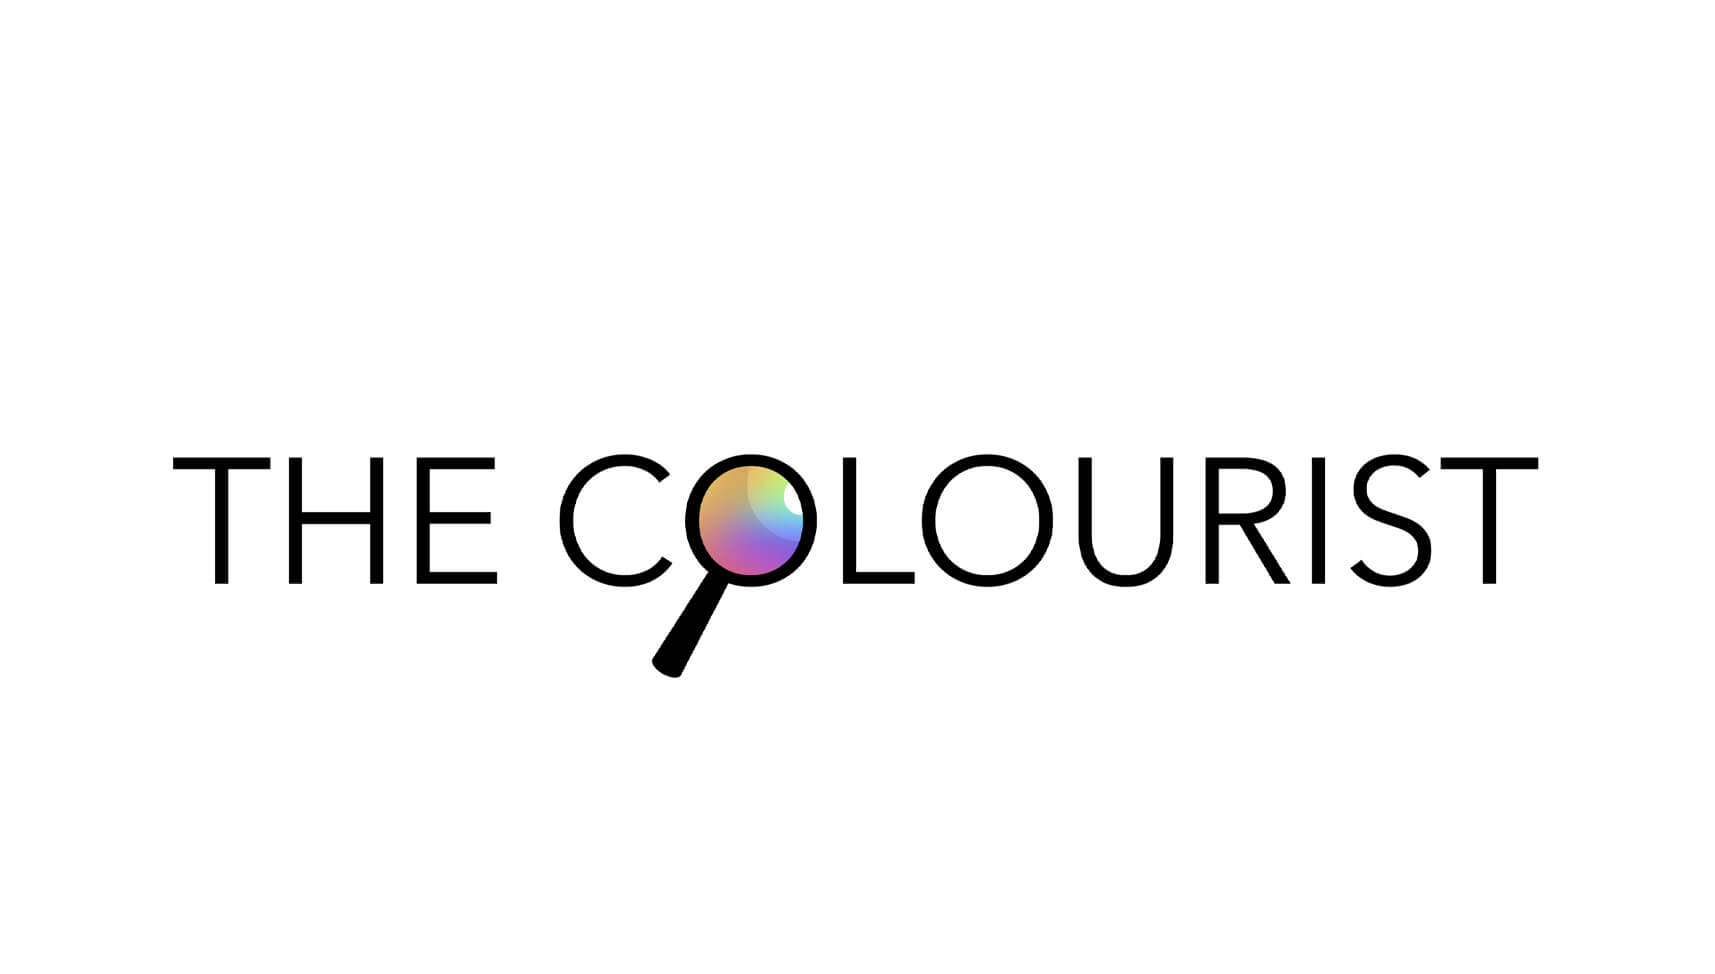 The Colourist blogging handle logo of artist Helen Trevisiol Duff